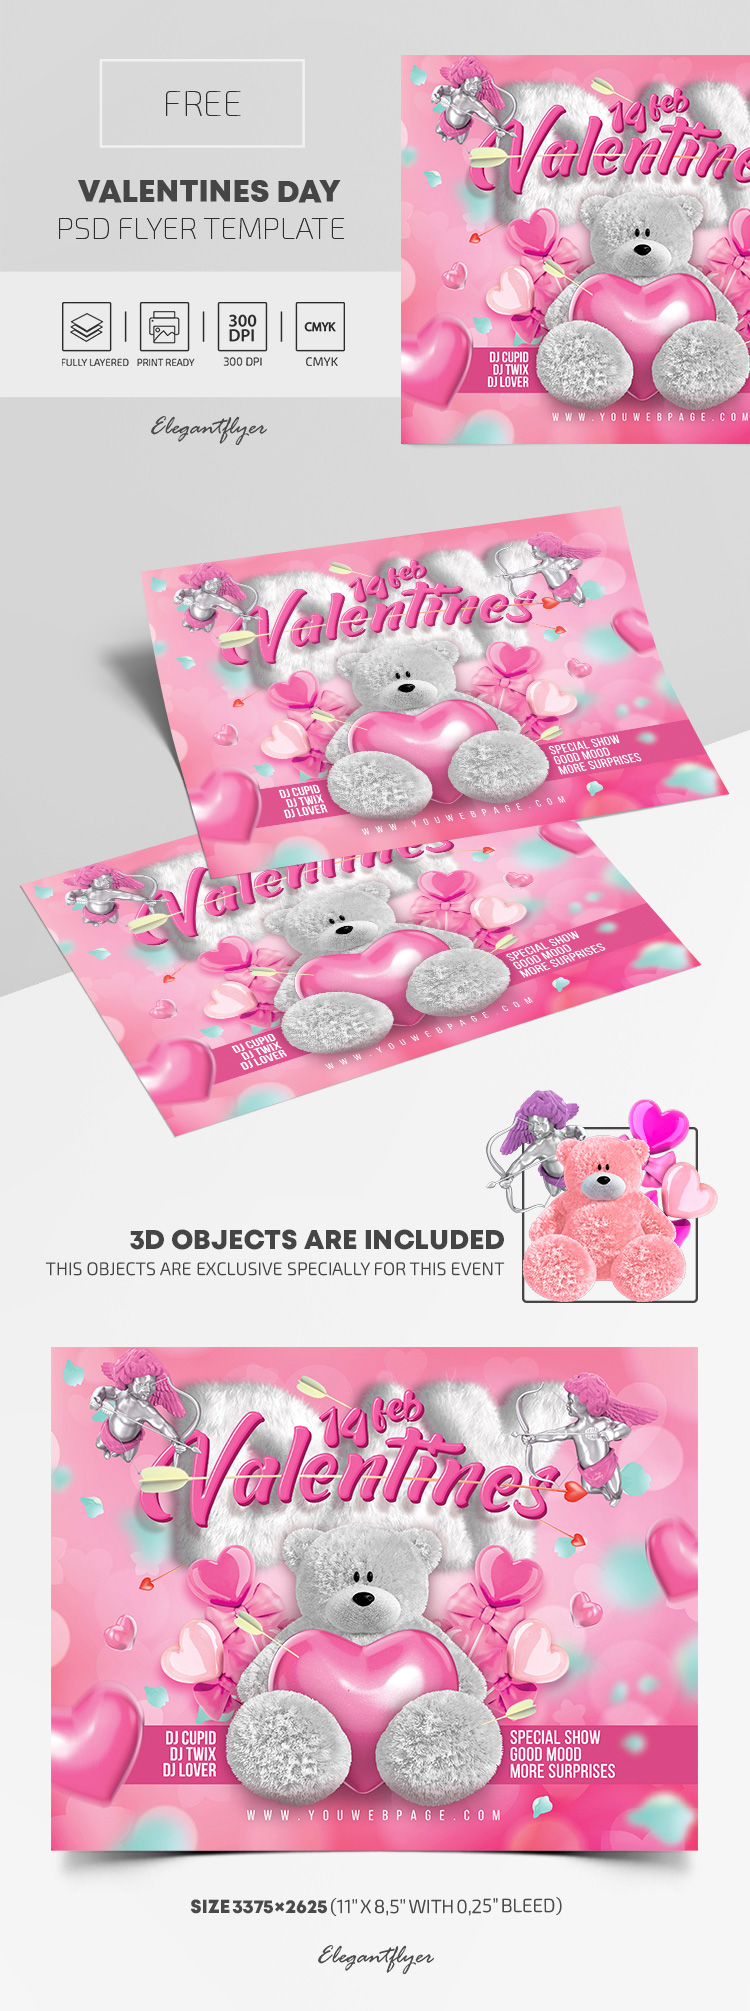 Valentines Day – Free PSD Flyer Template